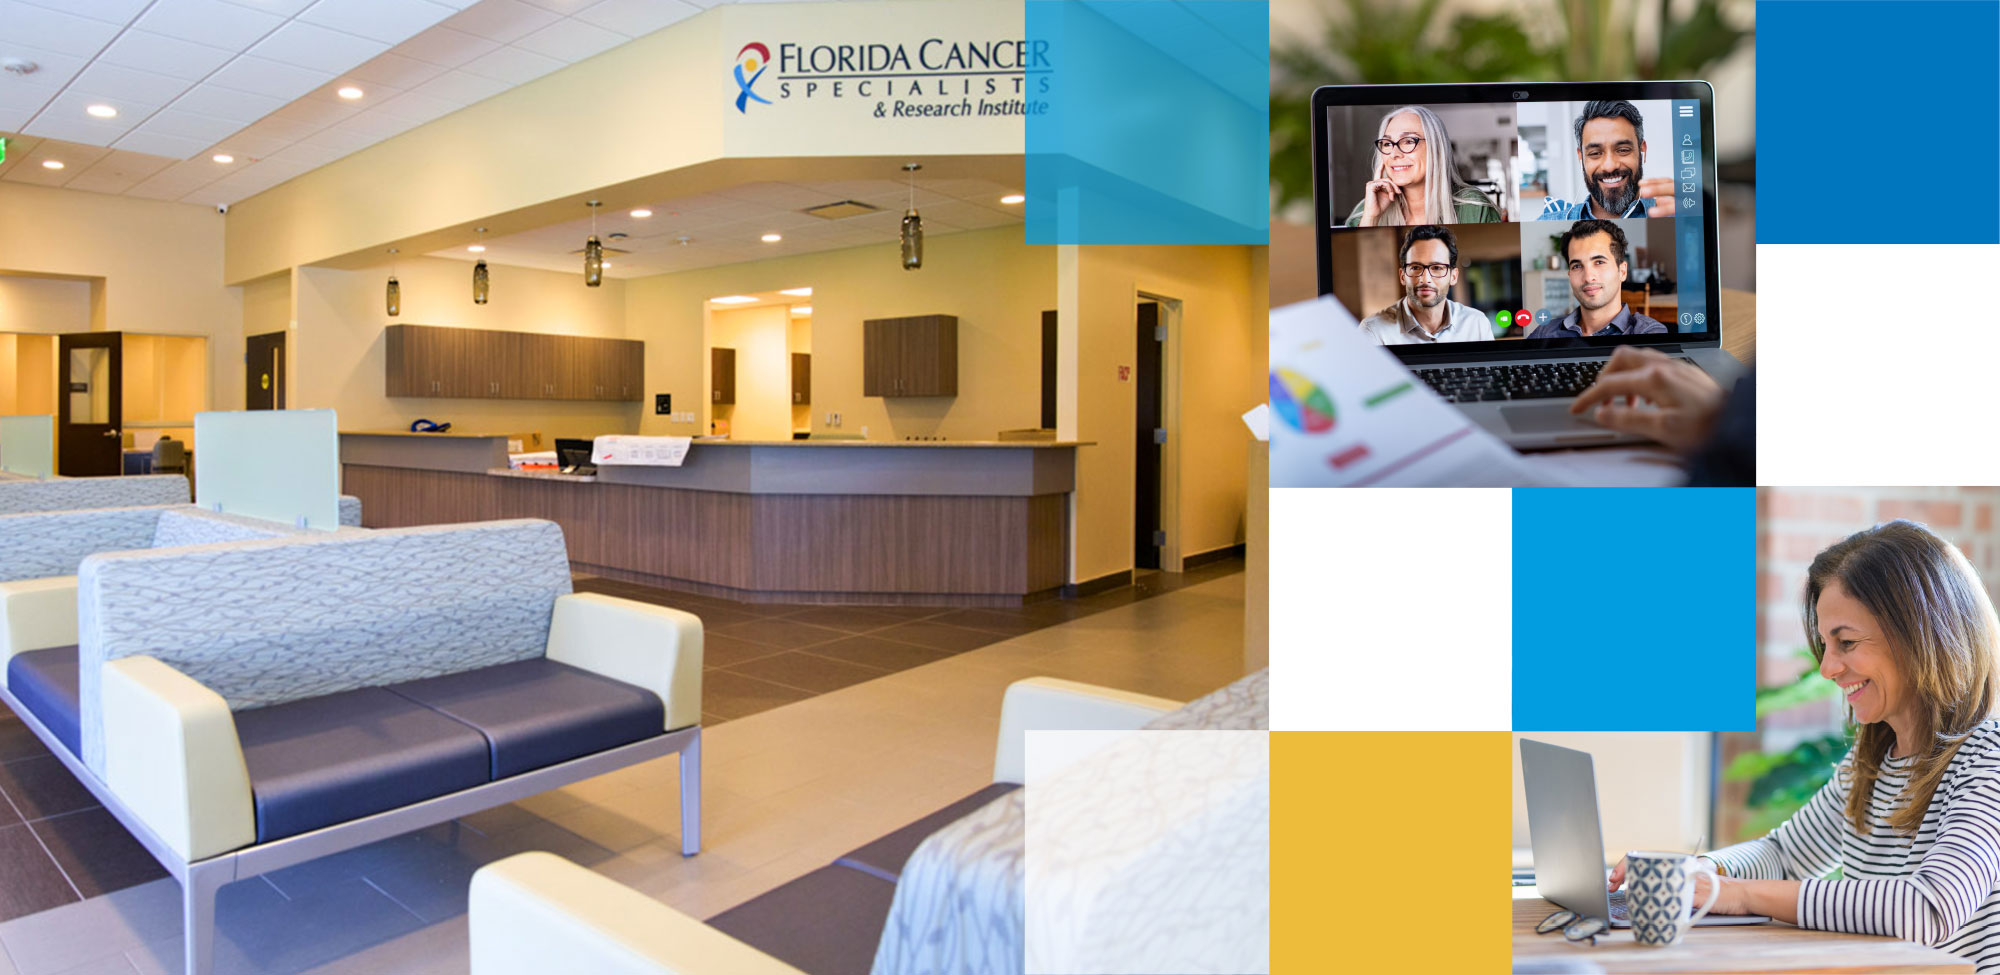 Header image featuring medical waiting area with commercial office furniture by OFDC Commercial Interiors and woman Zooming with coworkers